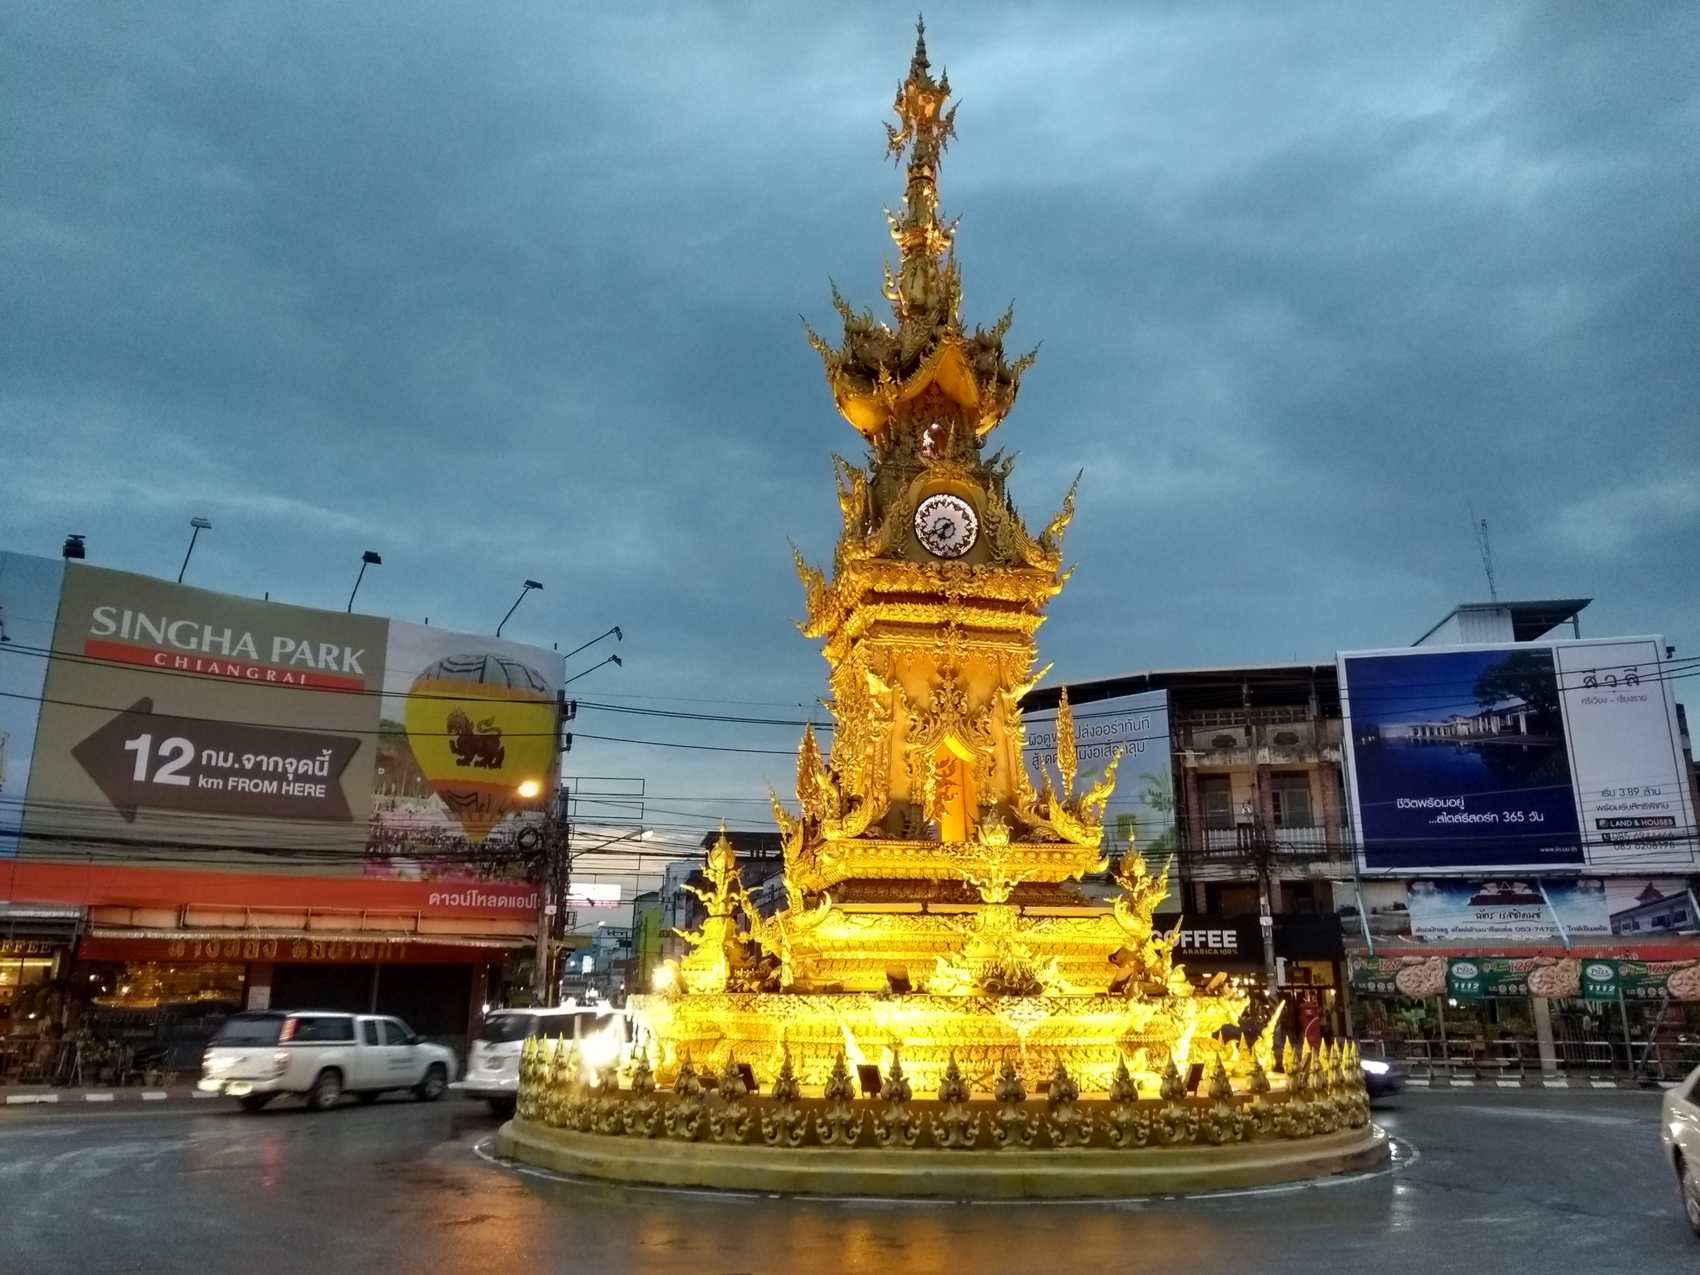 The Golden Clock Tower in Chiang Rai